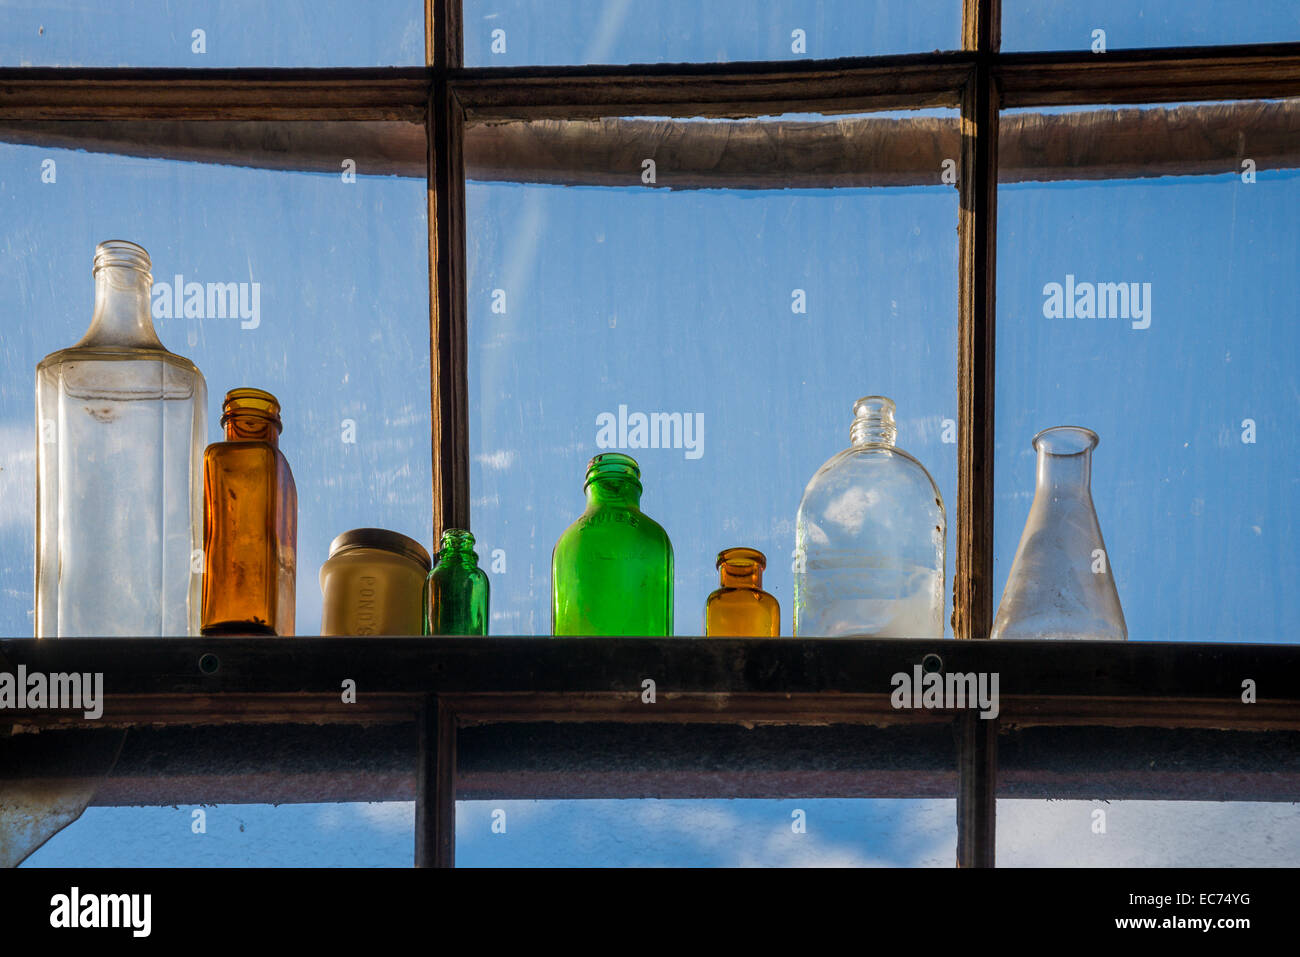 old glass bottles in window - Stock Image